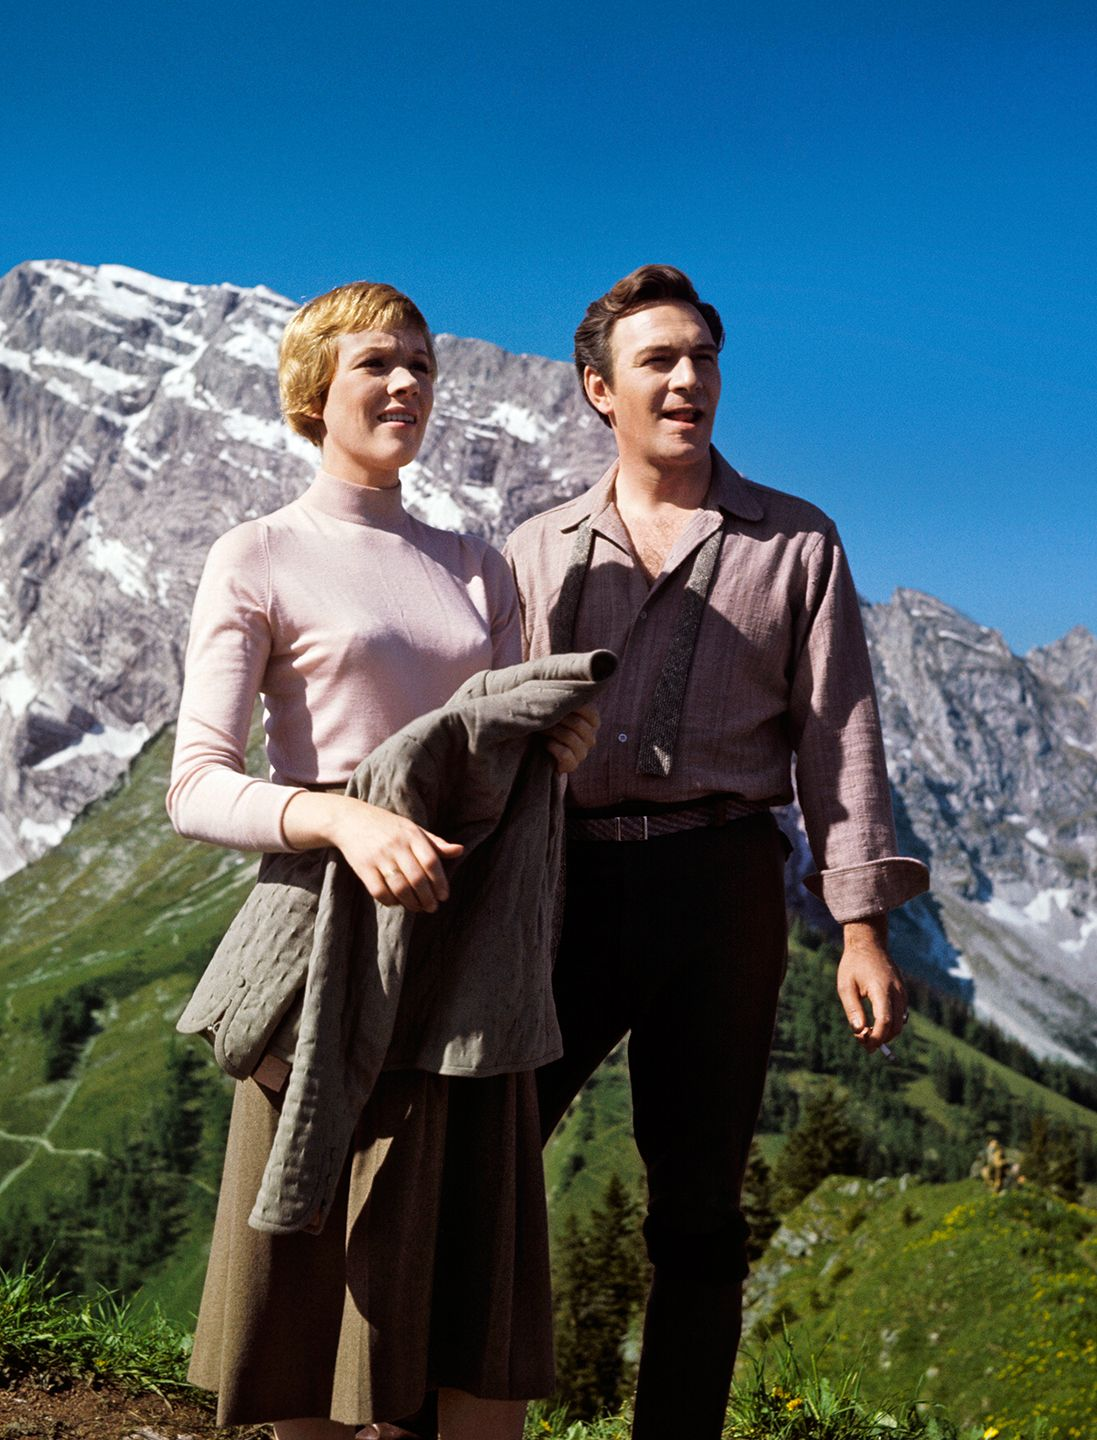 For Julie Andrews and Christopher Plummer, The Sound of